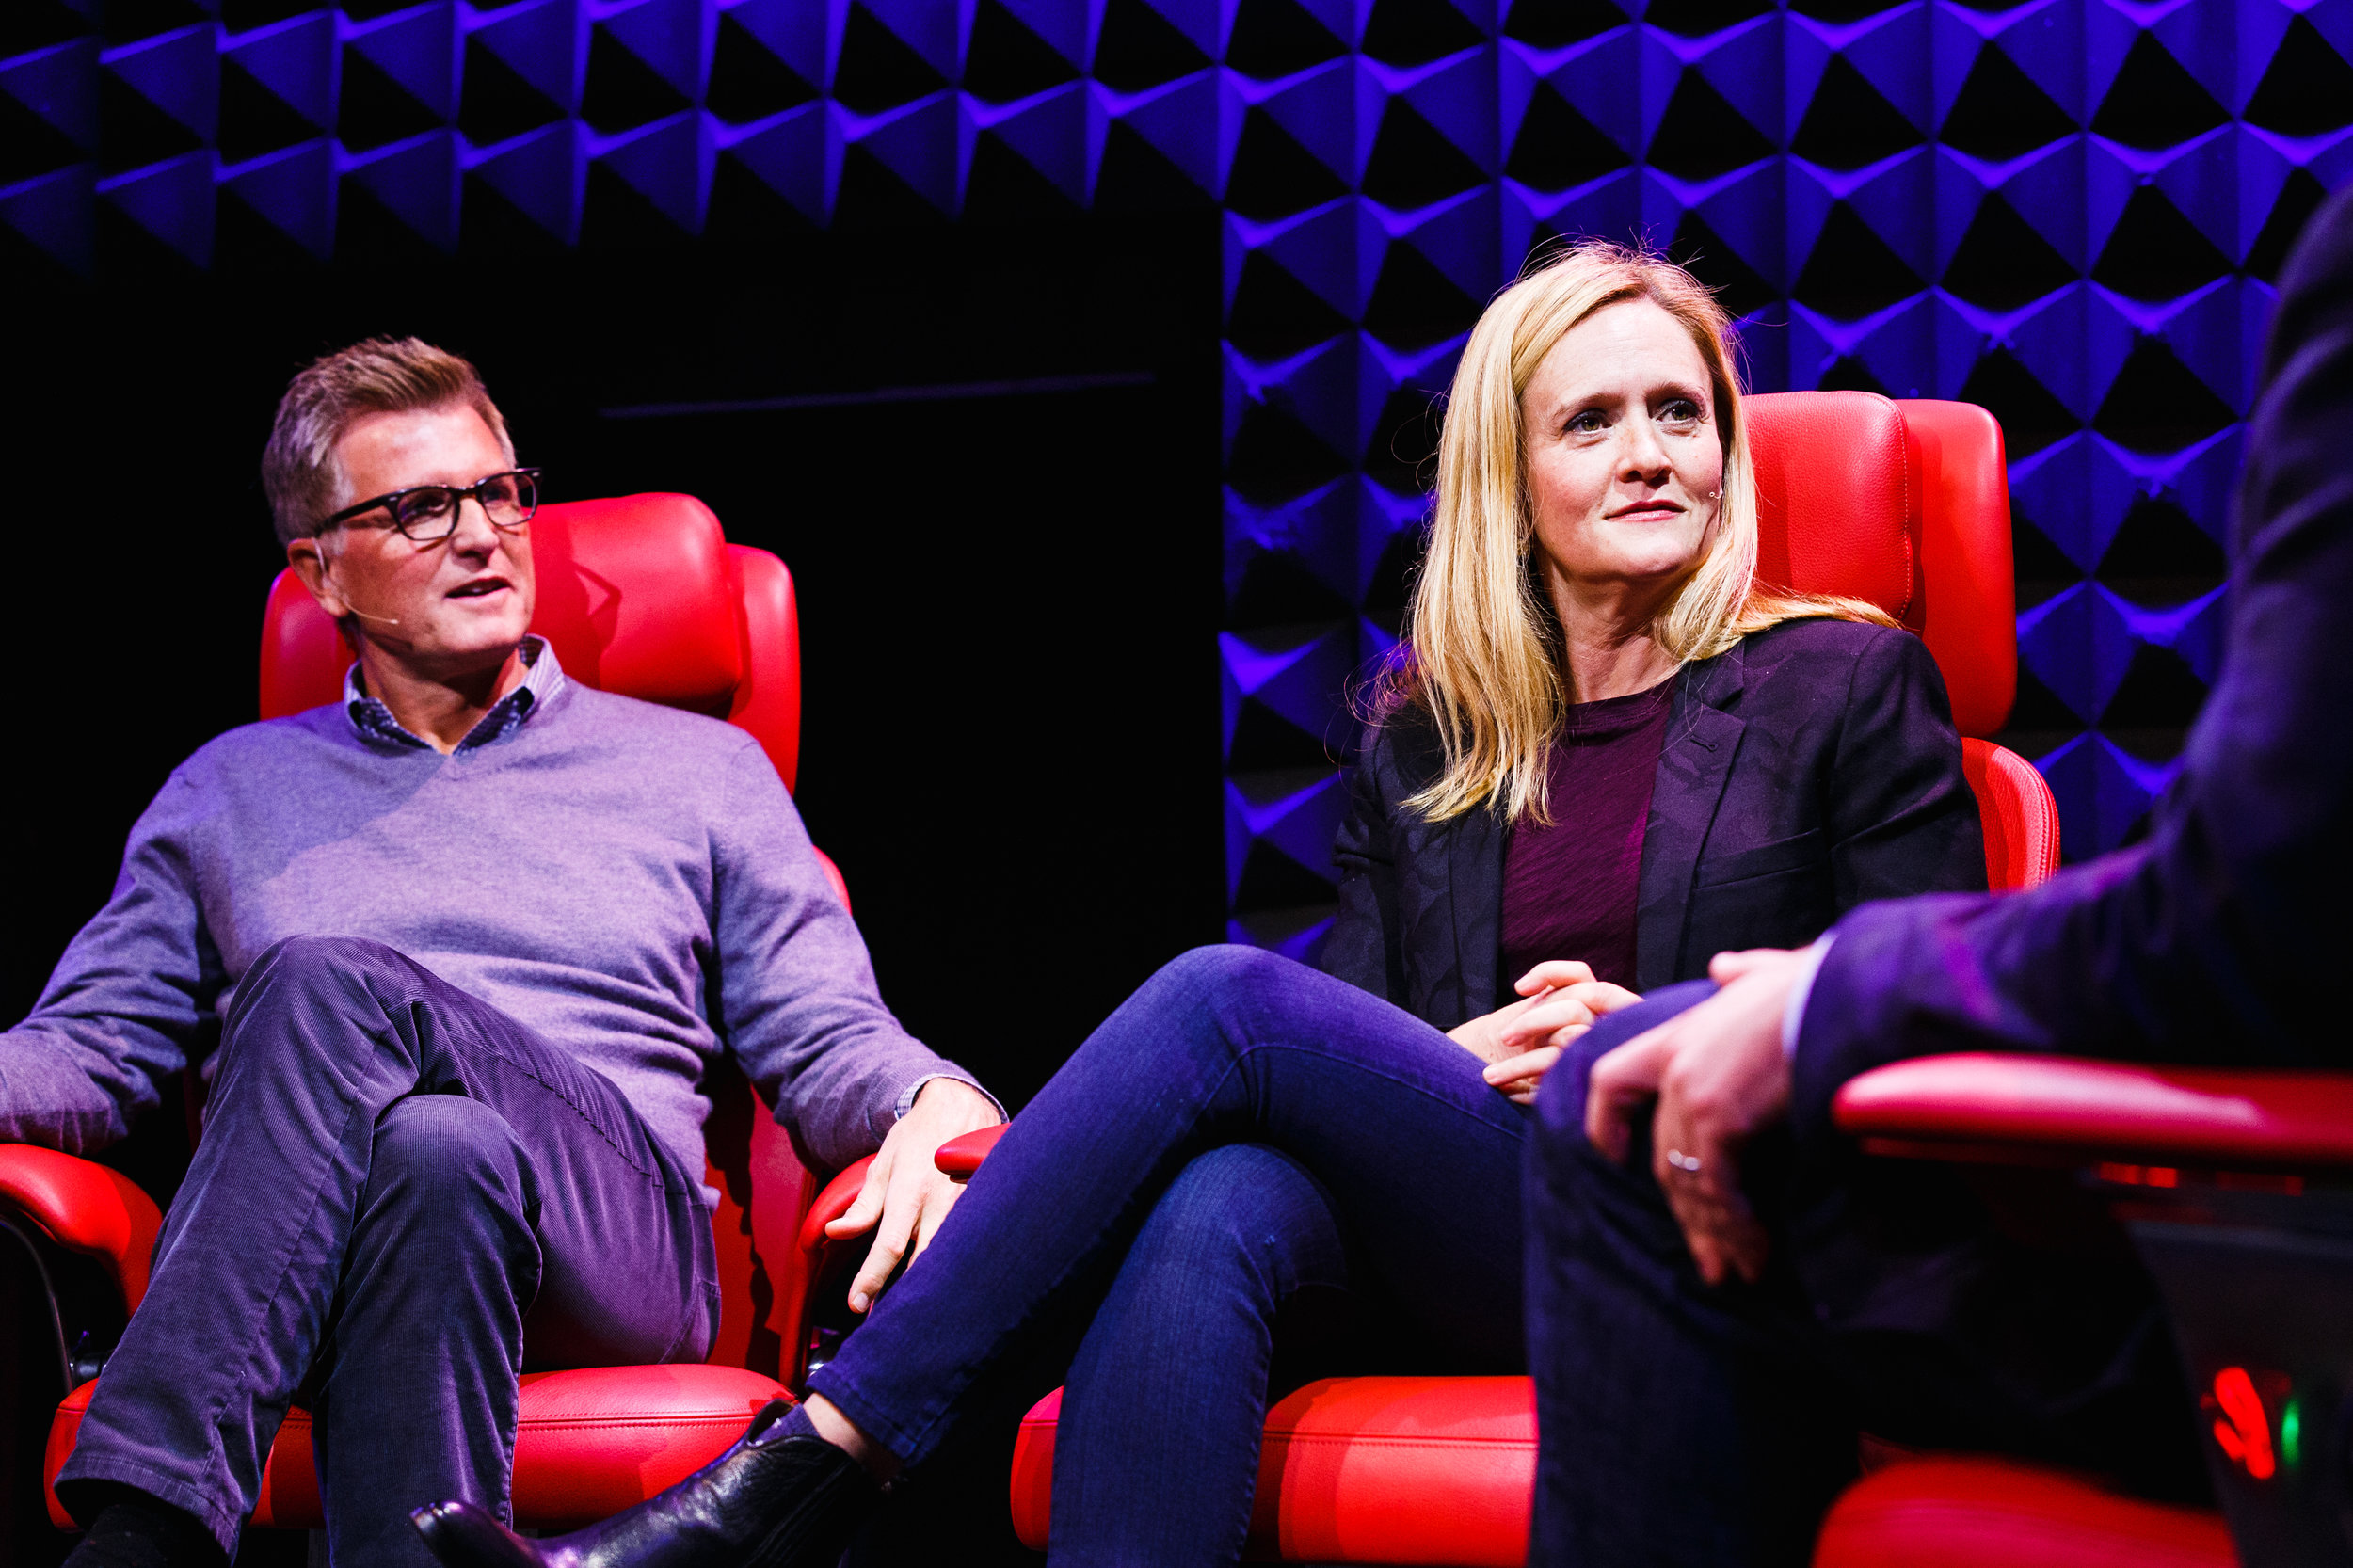 VOX RECODE'S LIVE PODCAST TAPING WITH SAMANTHA BEE AT JOE'S PUB, NYC